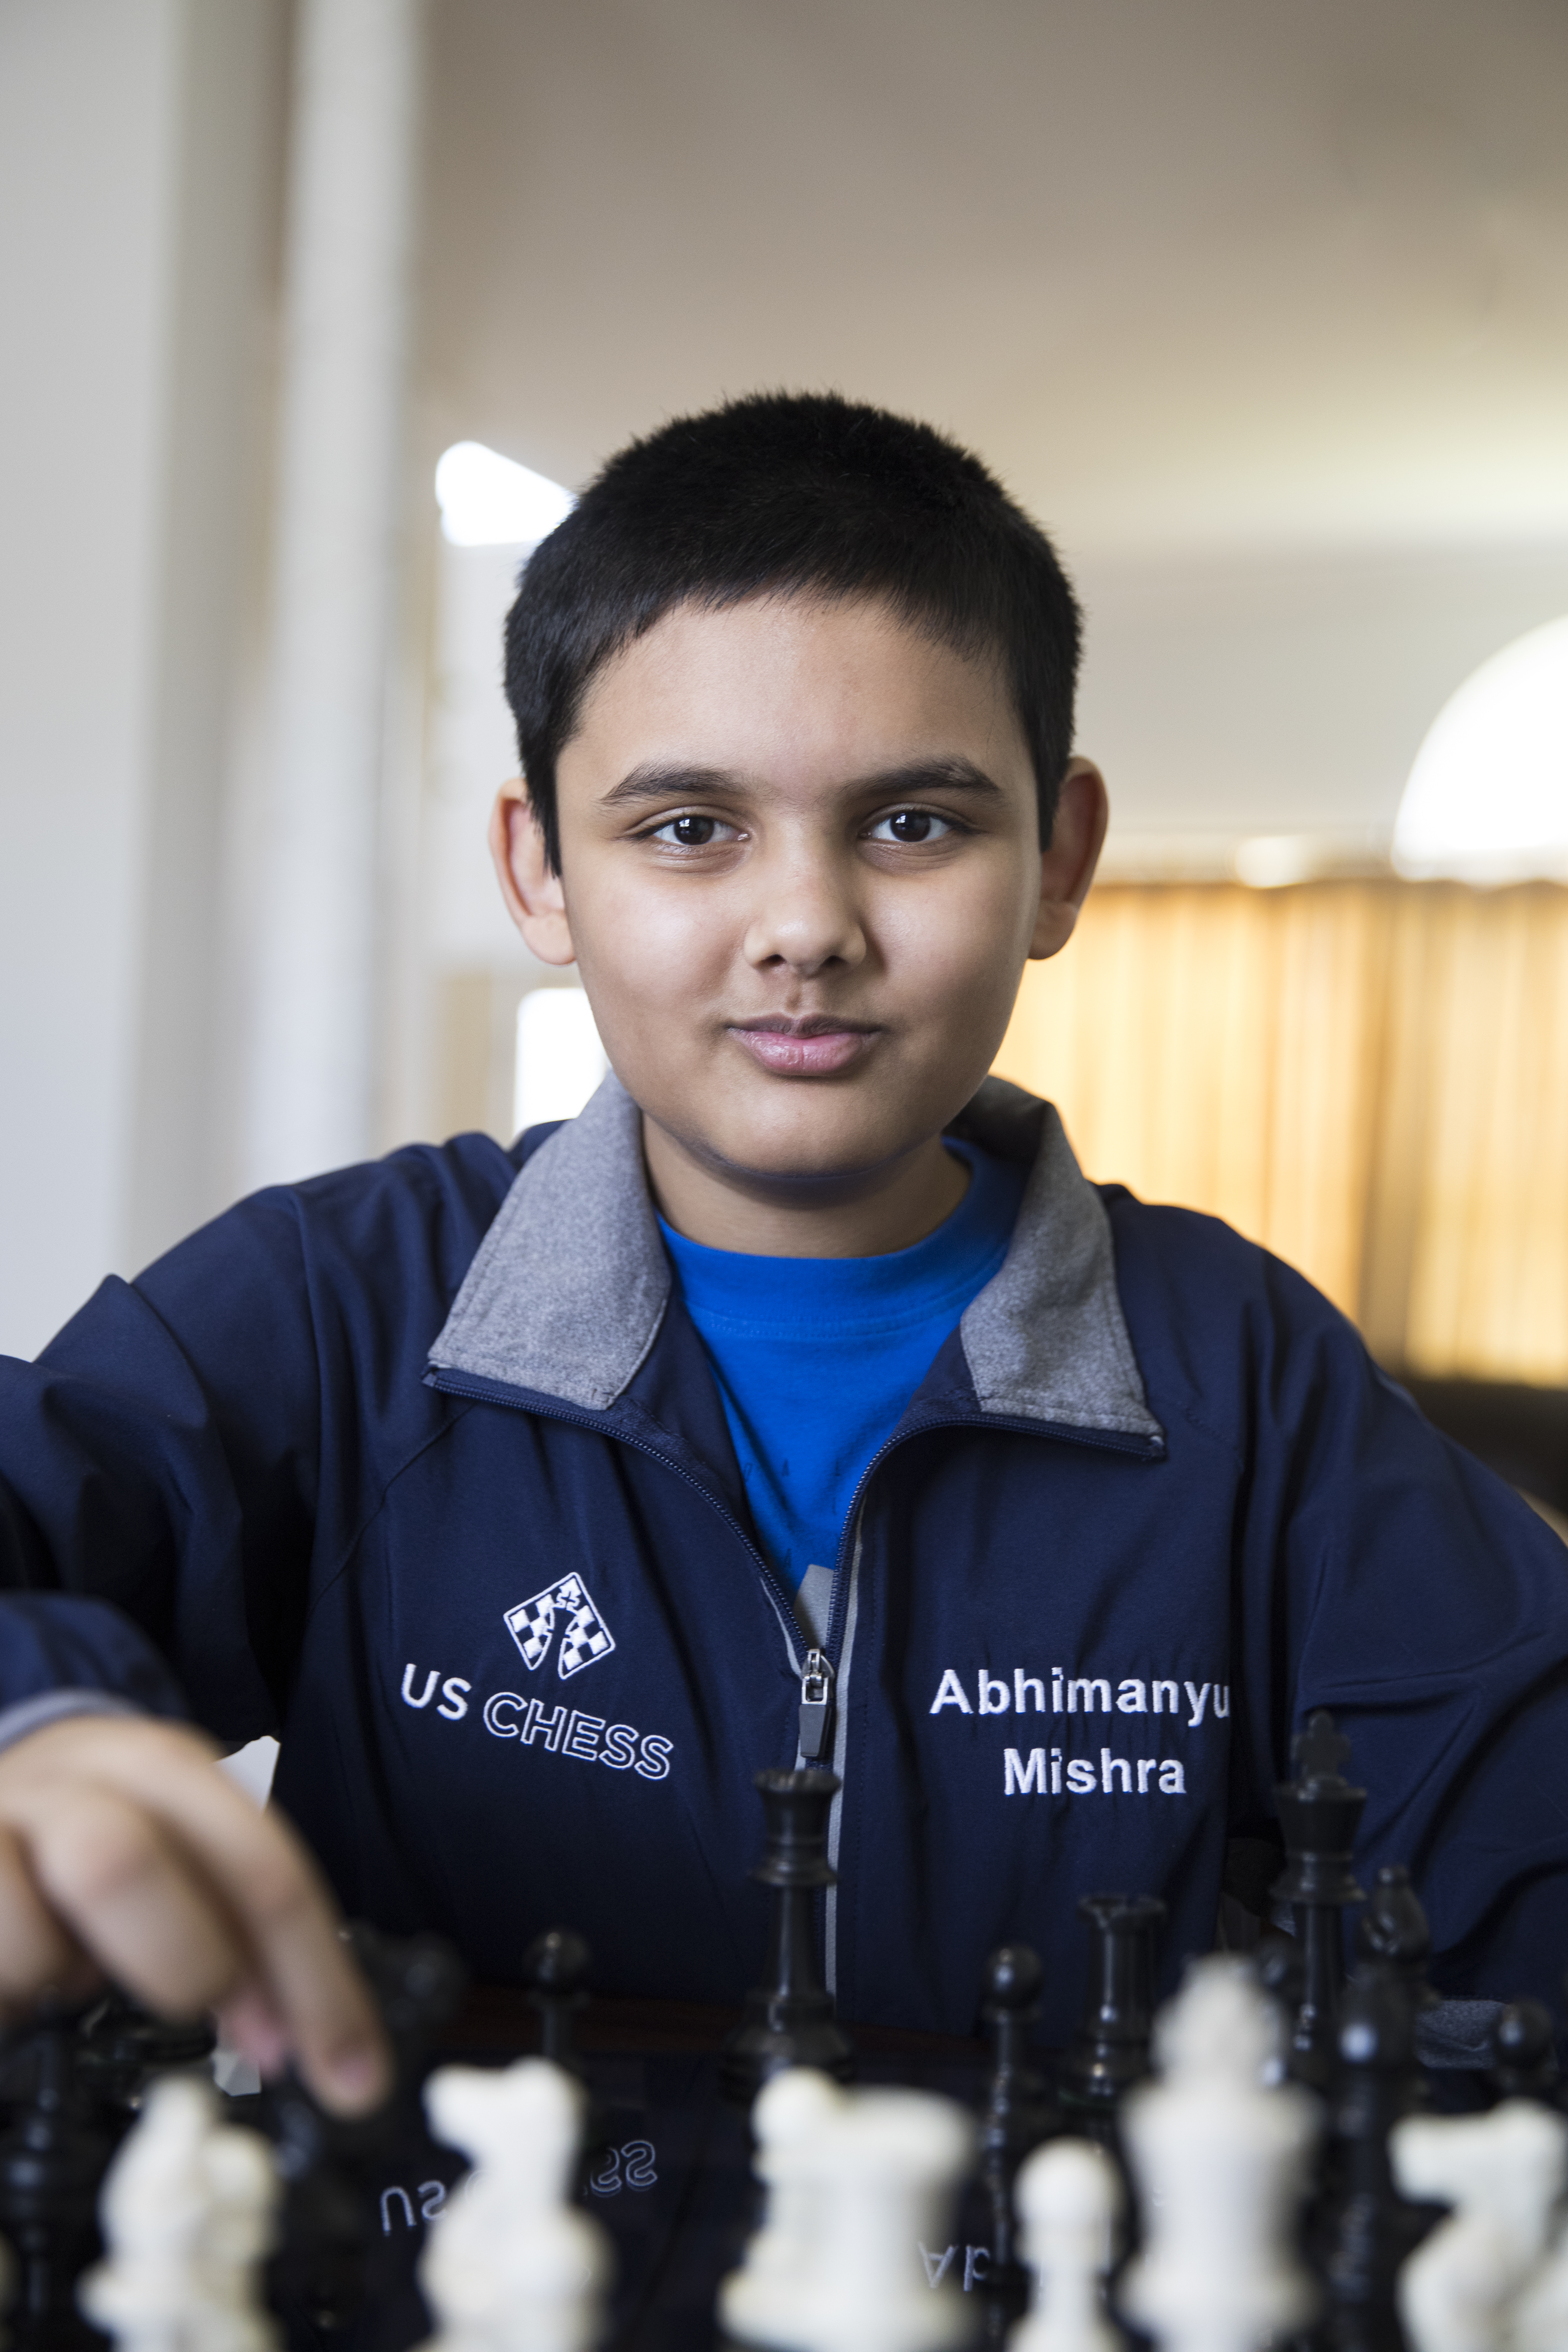 Mishra, born on February 5, 2009, took 12 years, four months, and 25 days to obtain the highest title in chess.